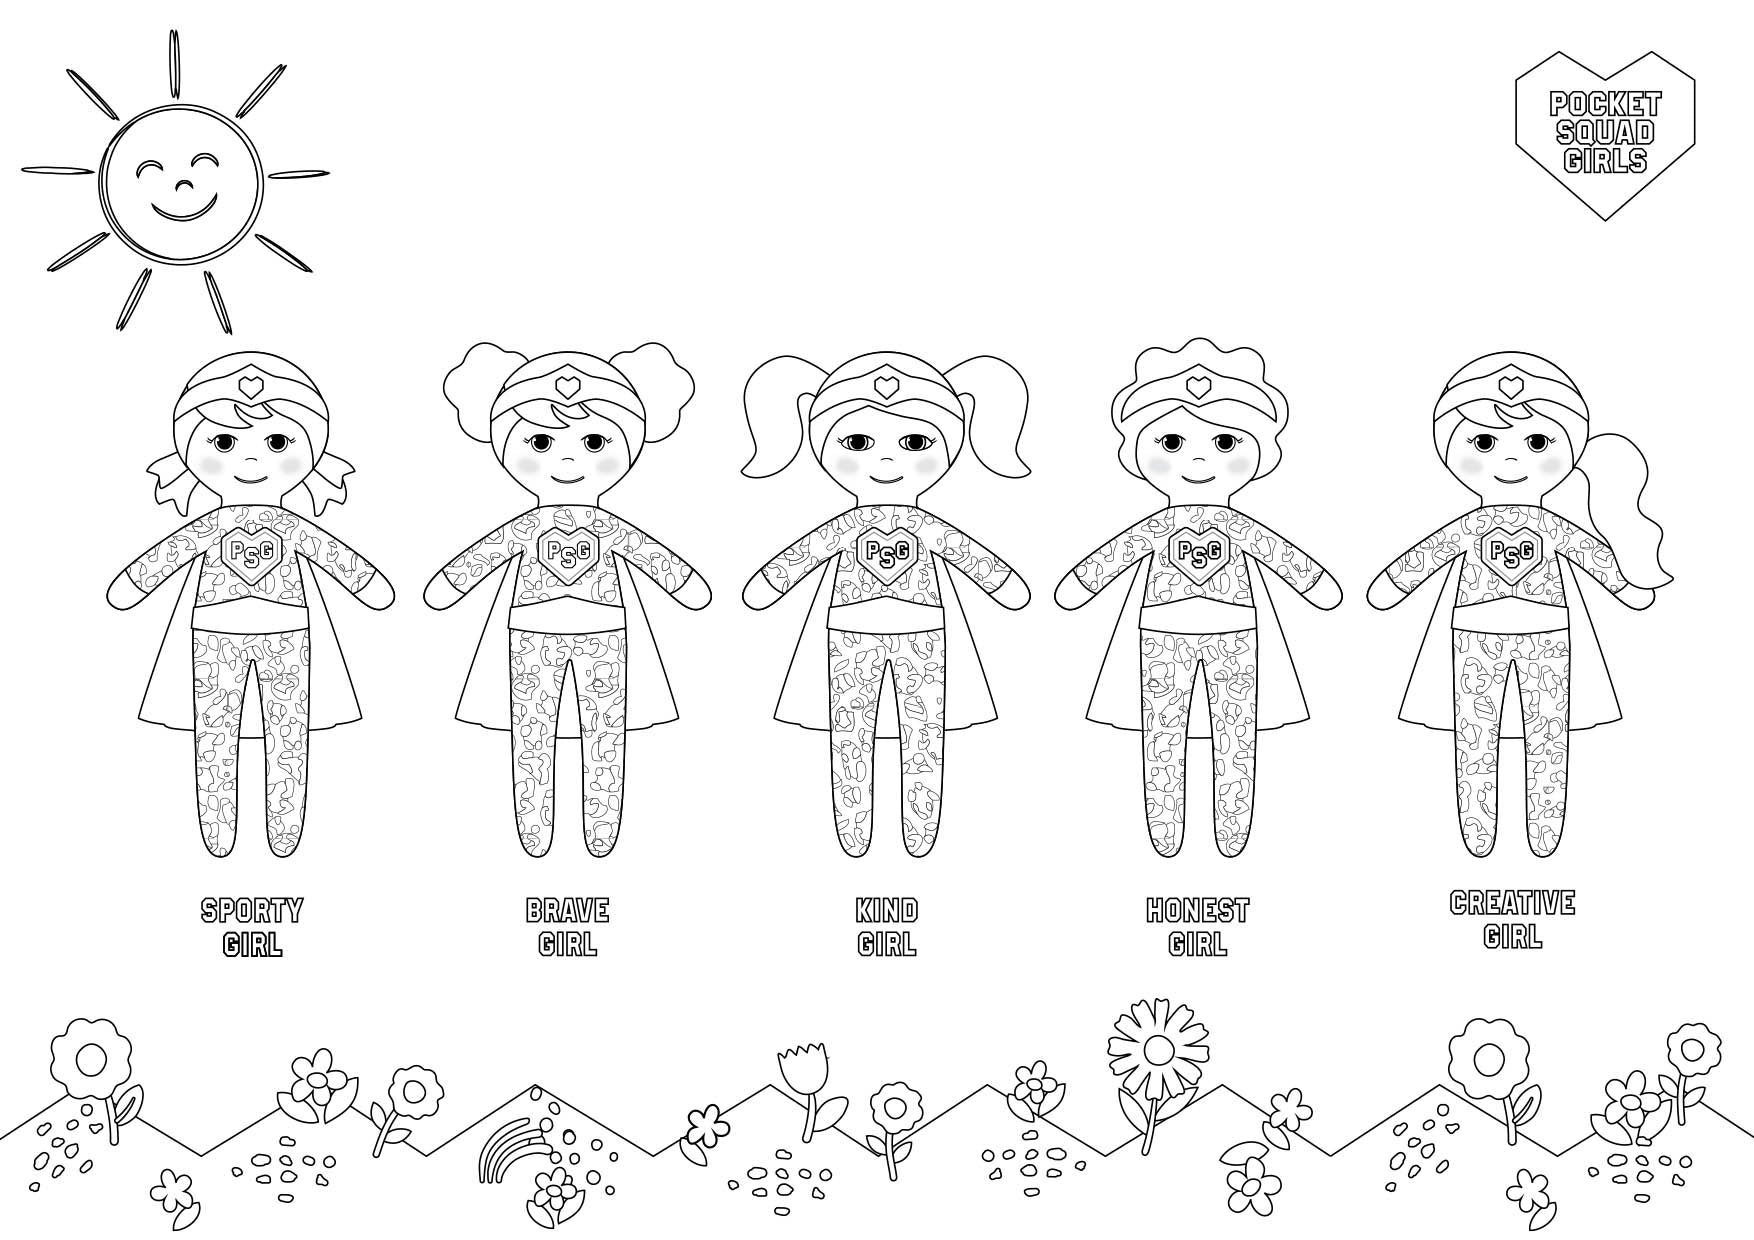 Pocket Squad Girls AW2020 Squad colouring-in PDF